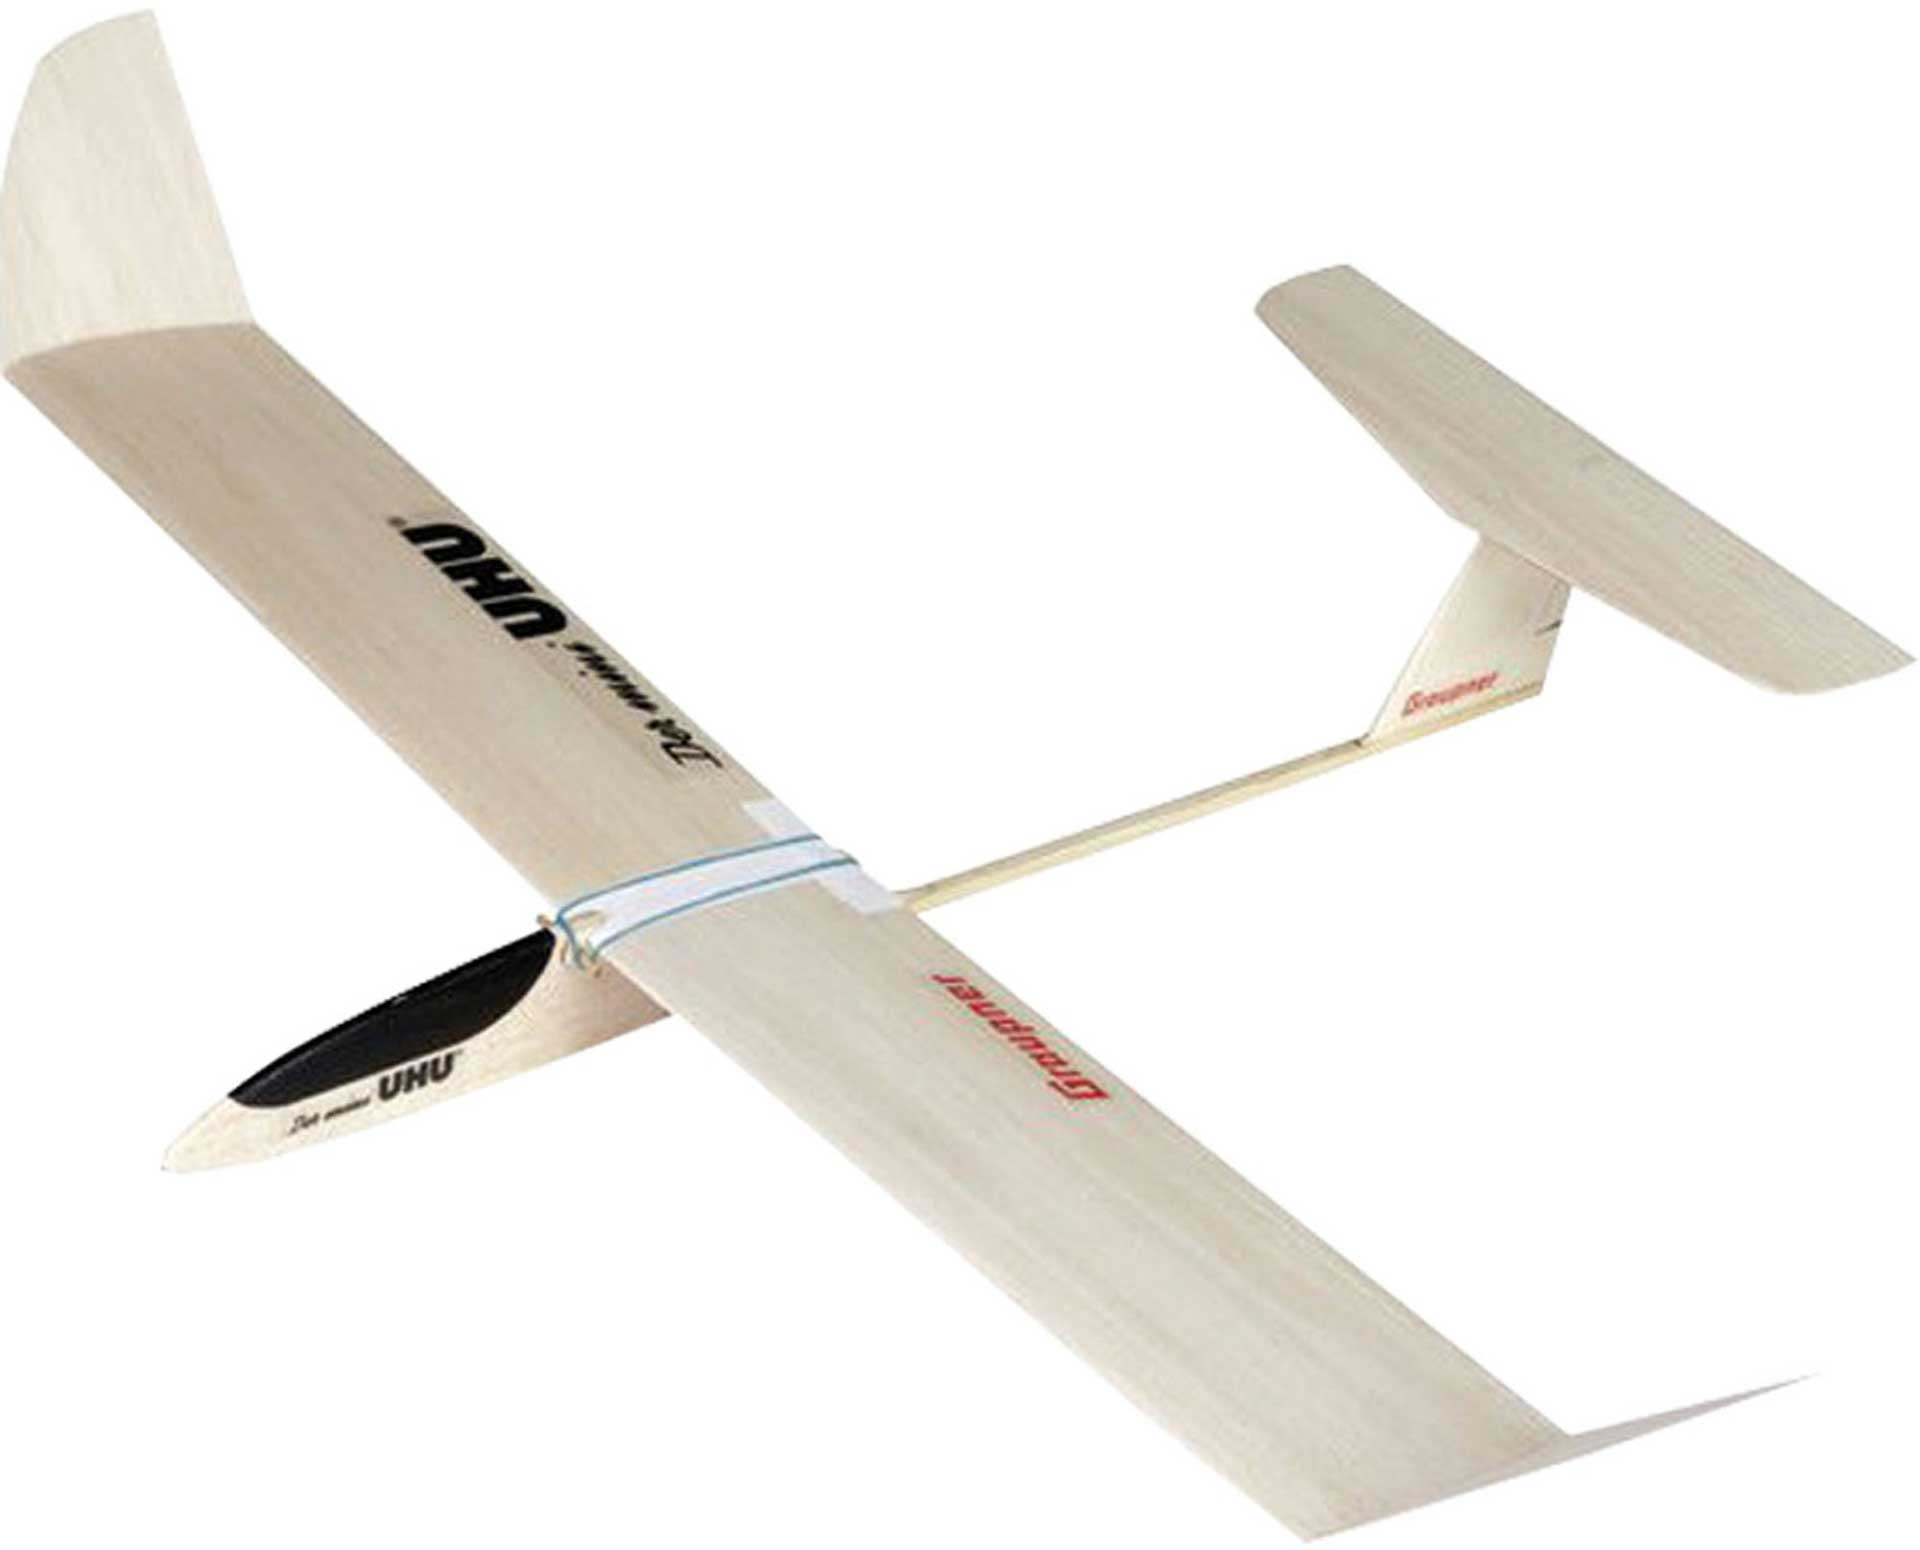 GRAUPNER THE MINI UHU FREE FLIGHT OR R/C MODEL